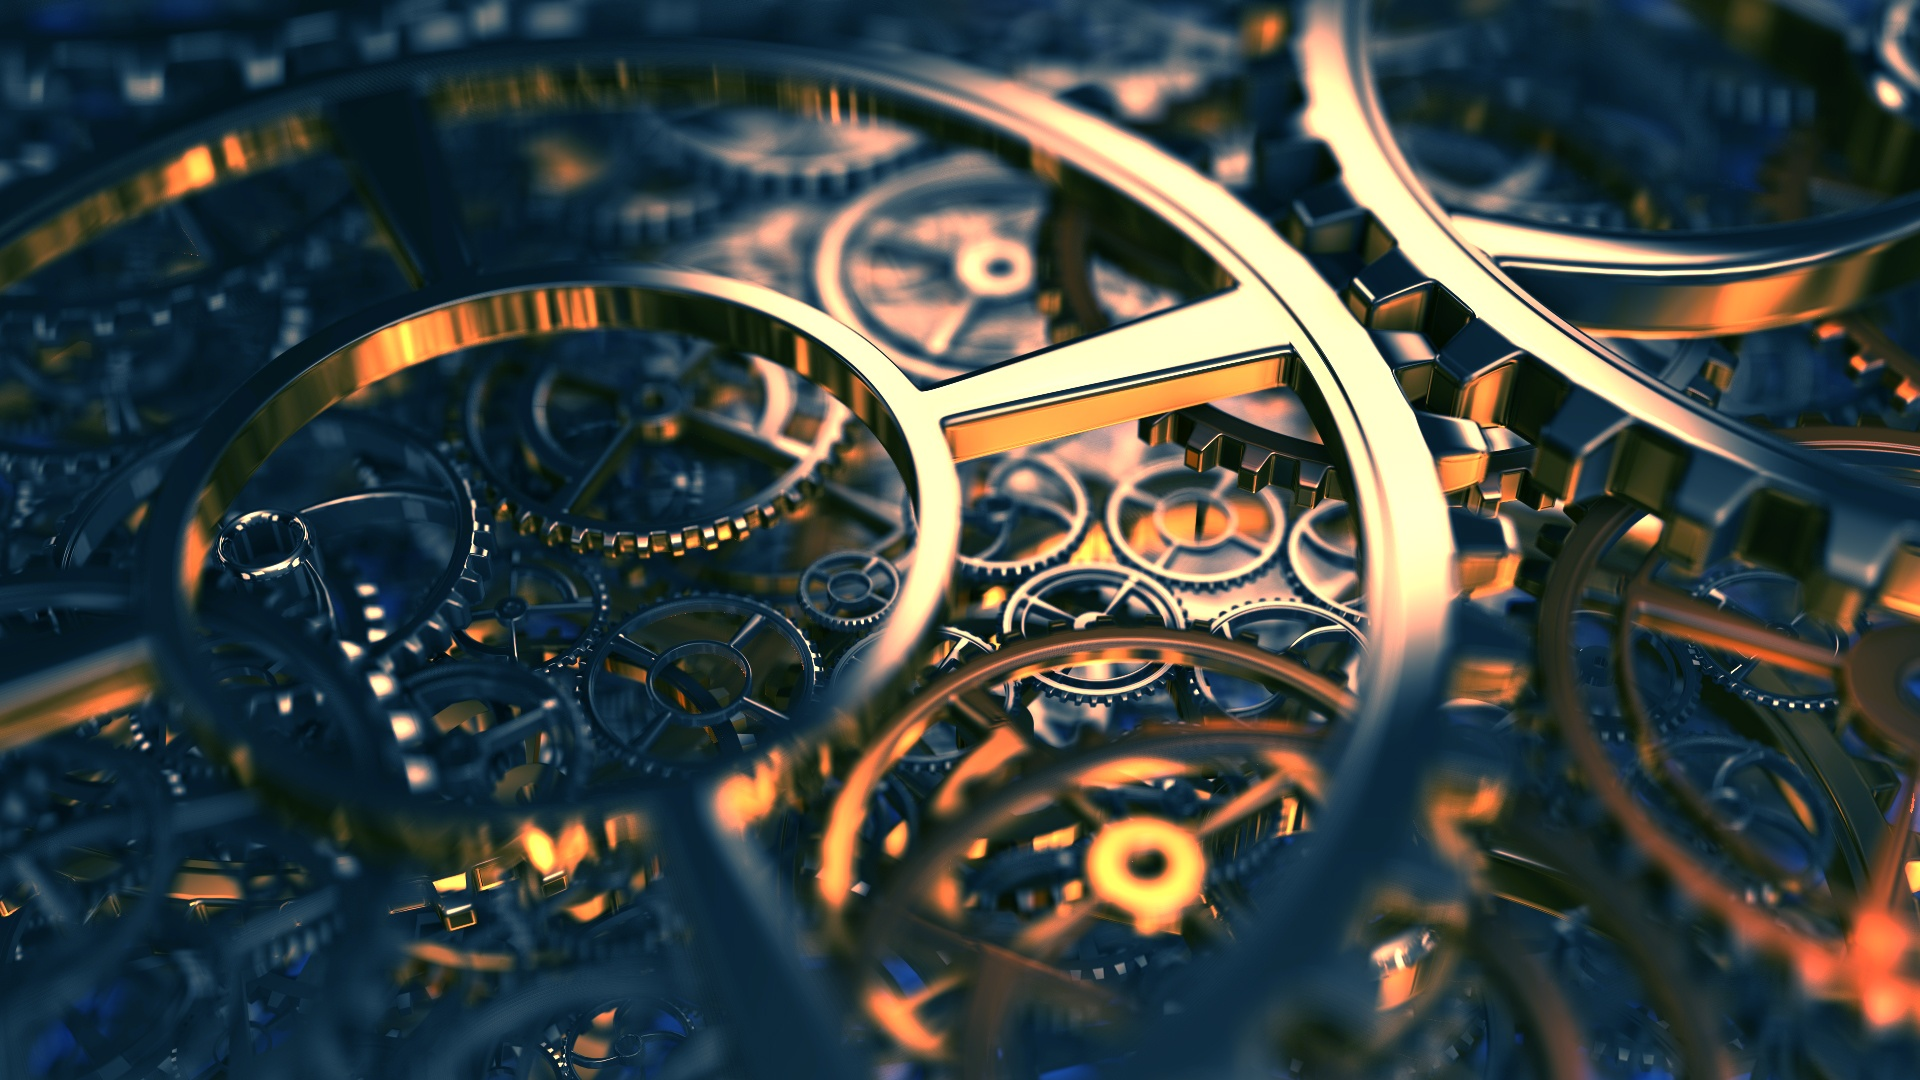 Steampunk Wallpaper HD 1630 1920 x 1080   WallpaperLayercom 1920x1080